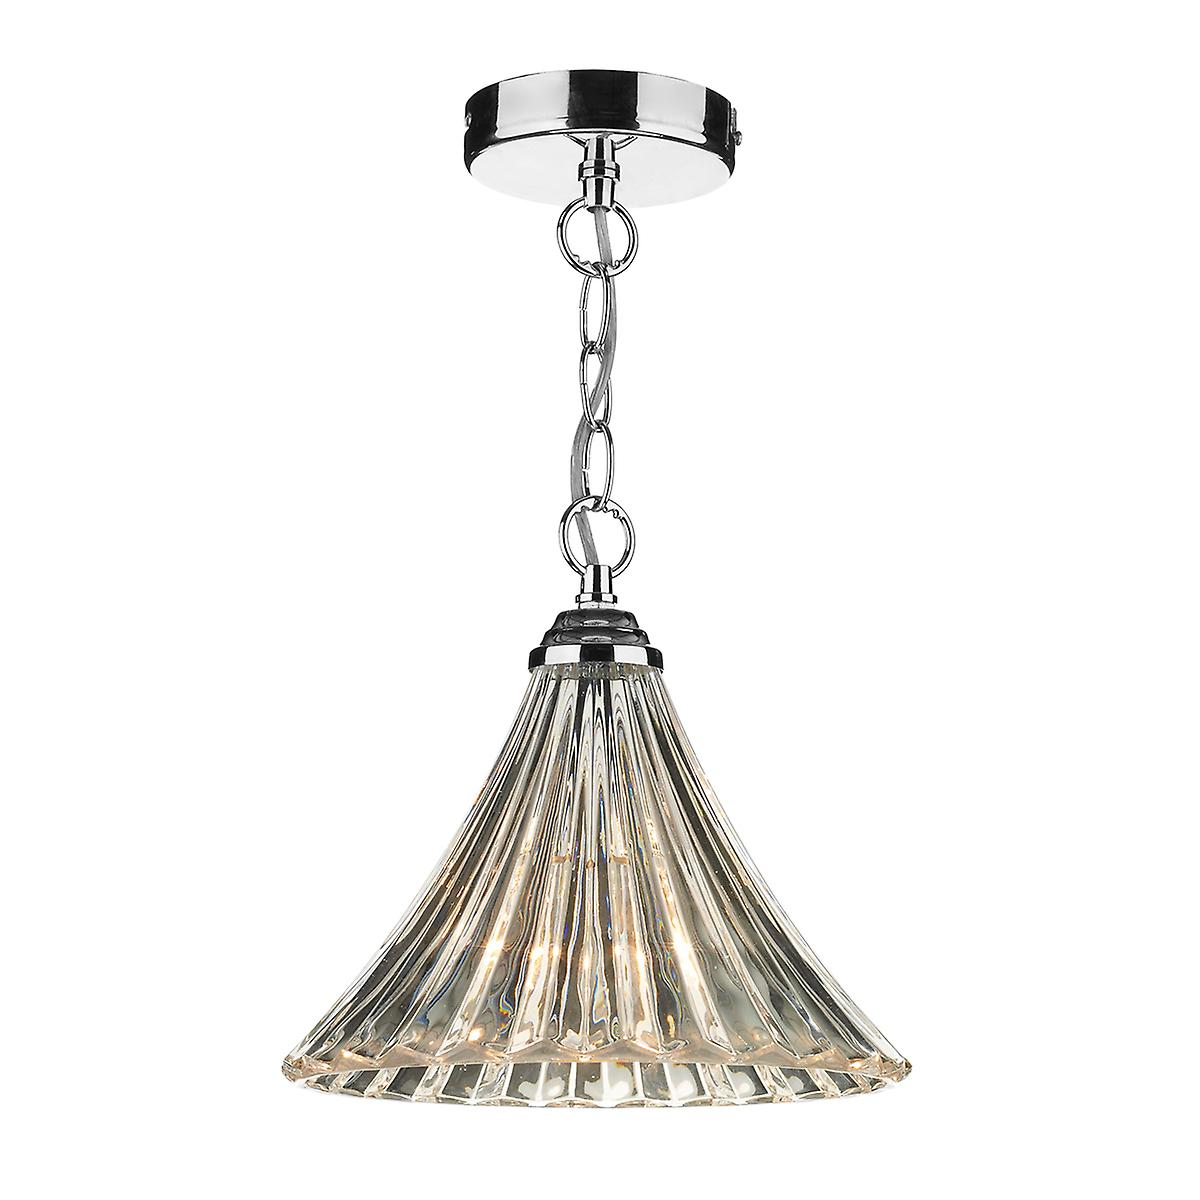 Dar ARD0150 Ardeche Small Ceiling Chain Pendant With Amber Fluted Glass